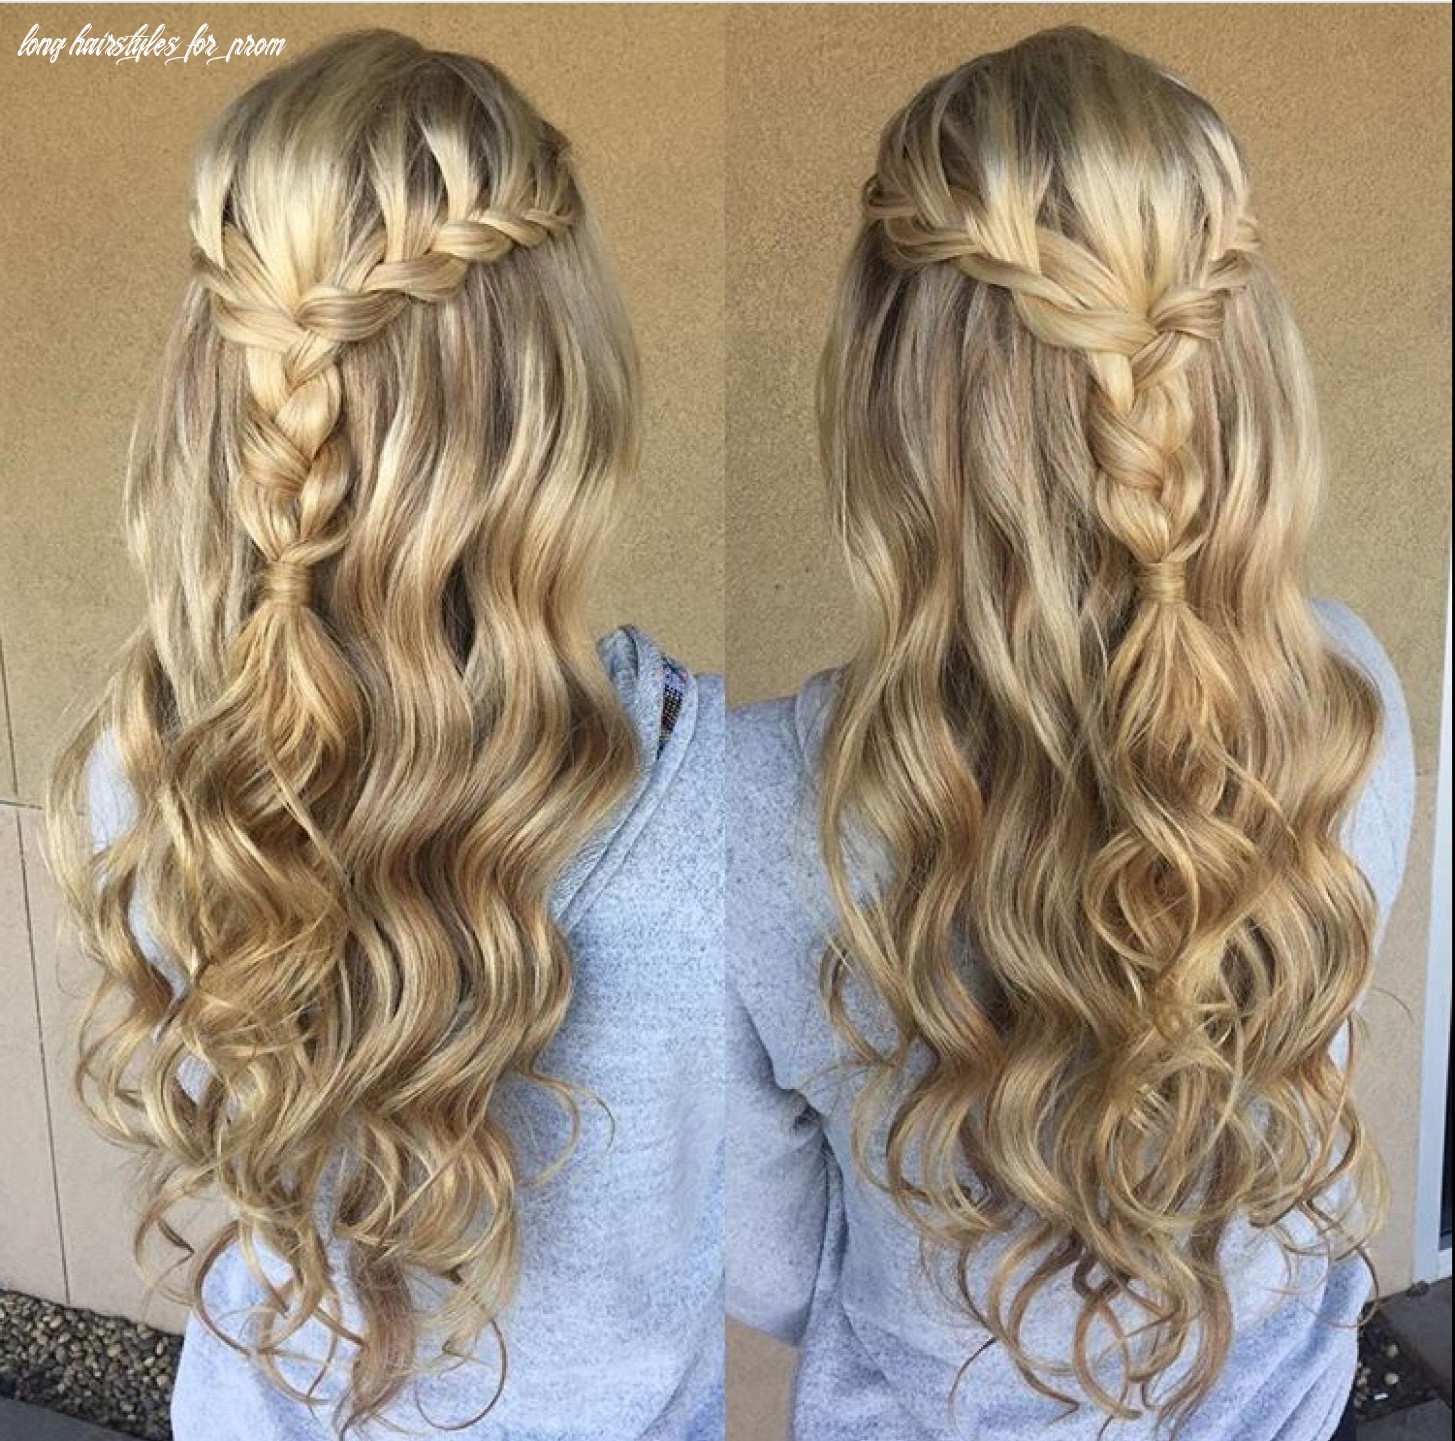 Hair haare (with images) | long hair wedding styles, prom